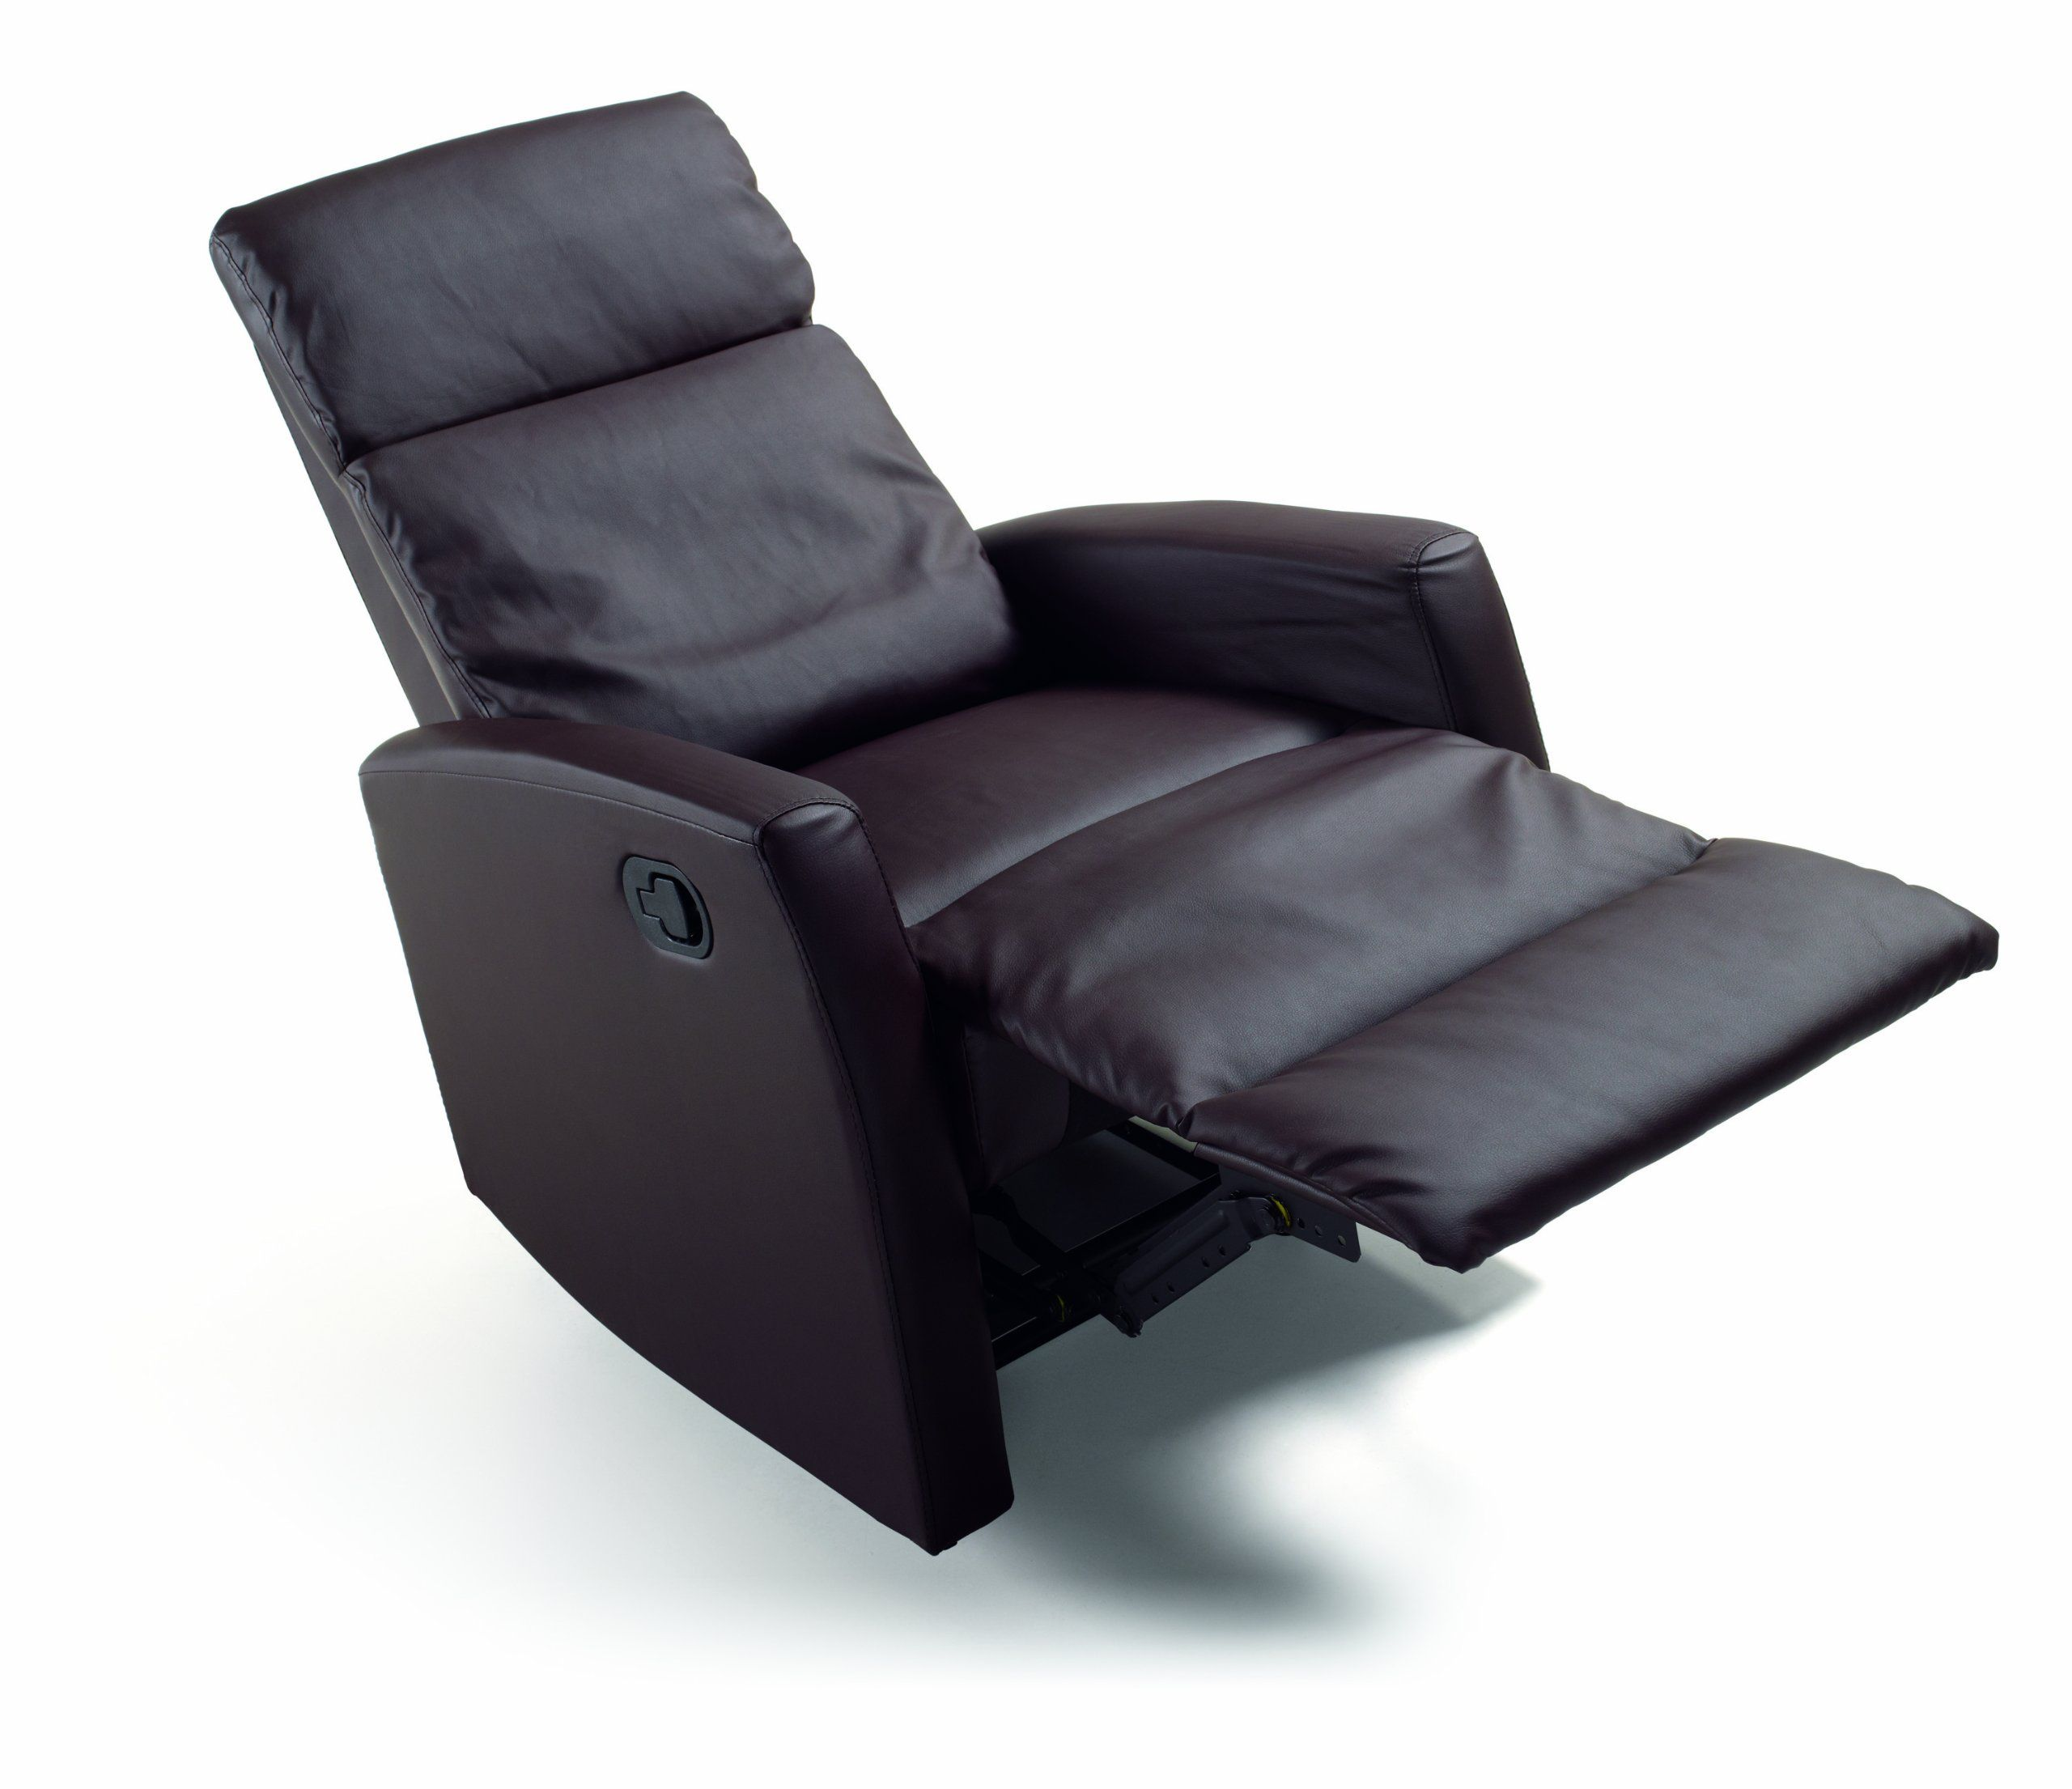 Sillon reclinable modelo tanque costo 600